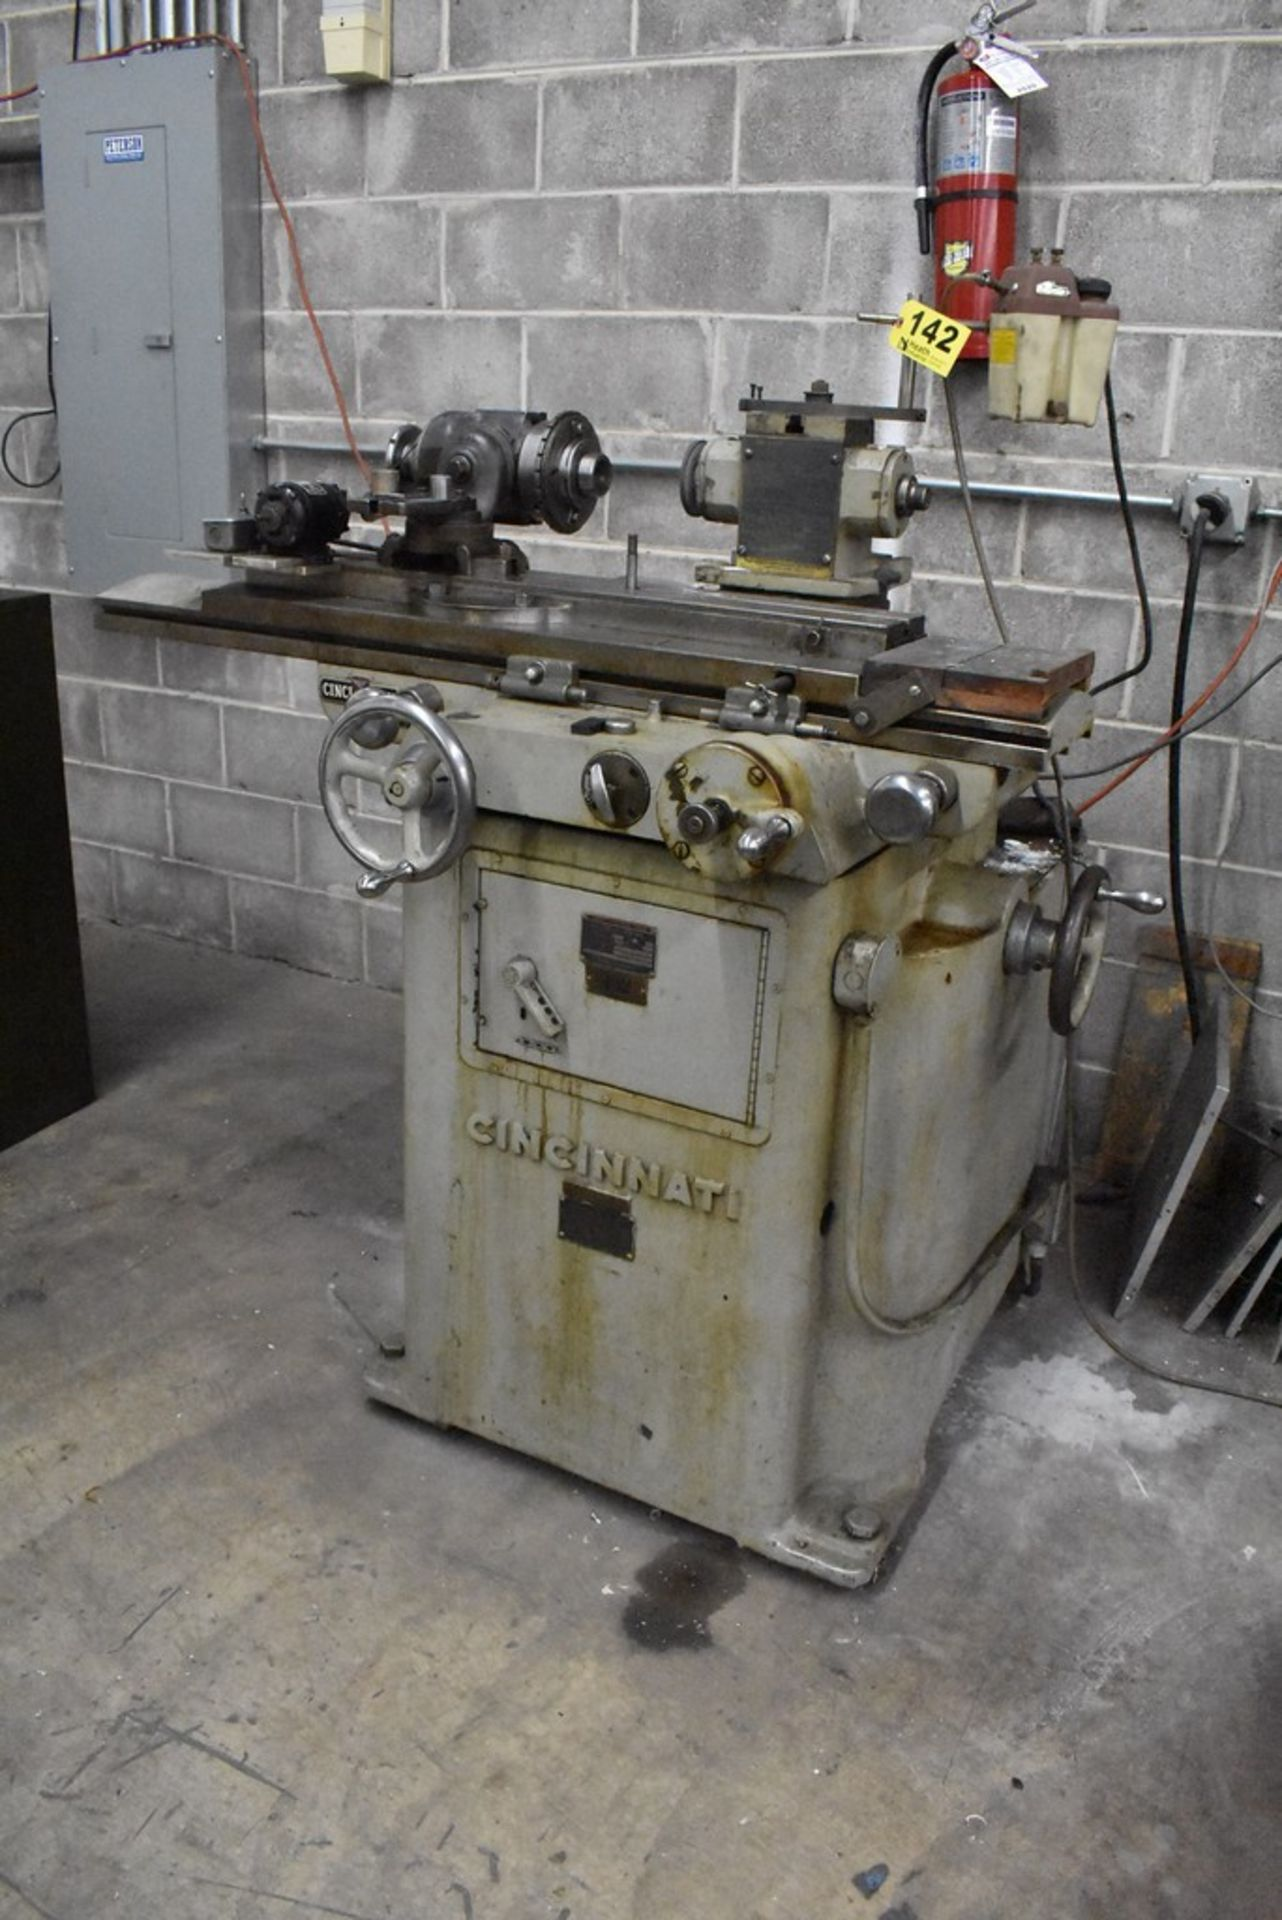 CINCINNATI NO. 2 TOOL AND CUTTER GRINDER, S/N 1D2T1Z-771, WITH MOTORIZED WORK HEAD